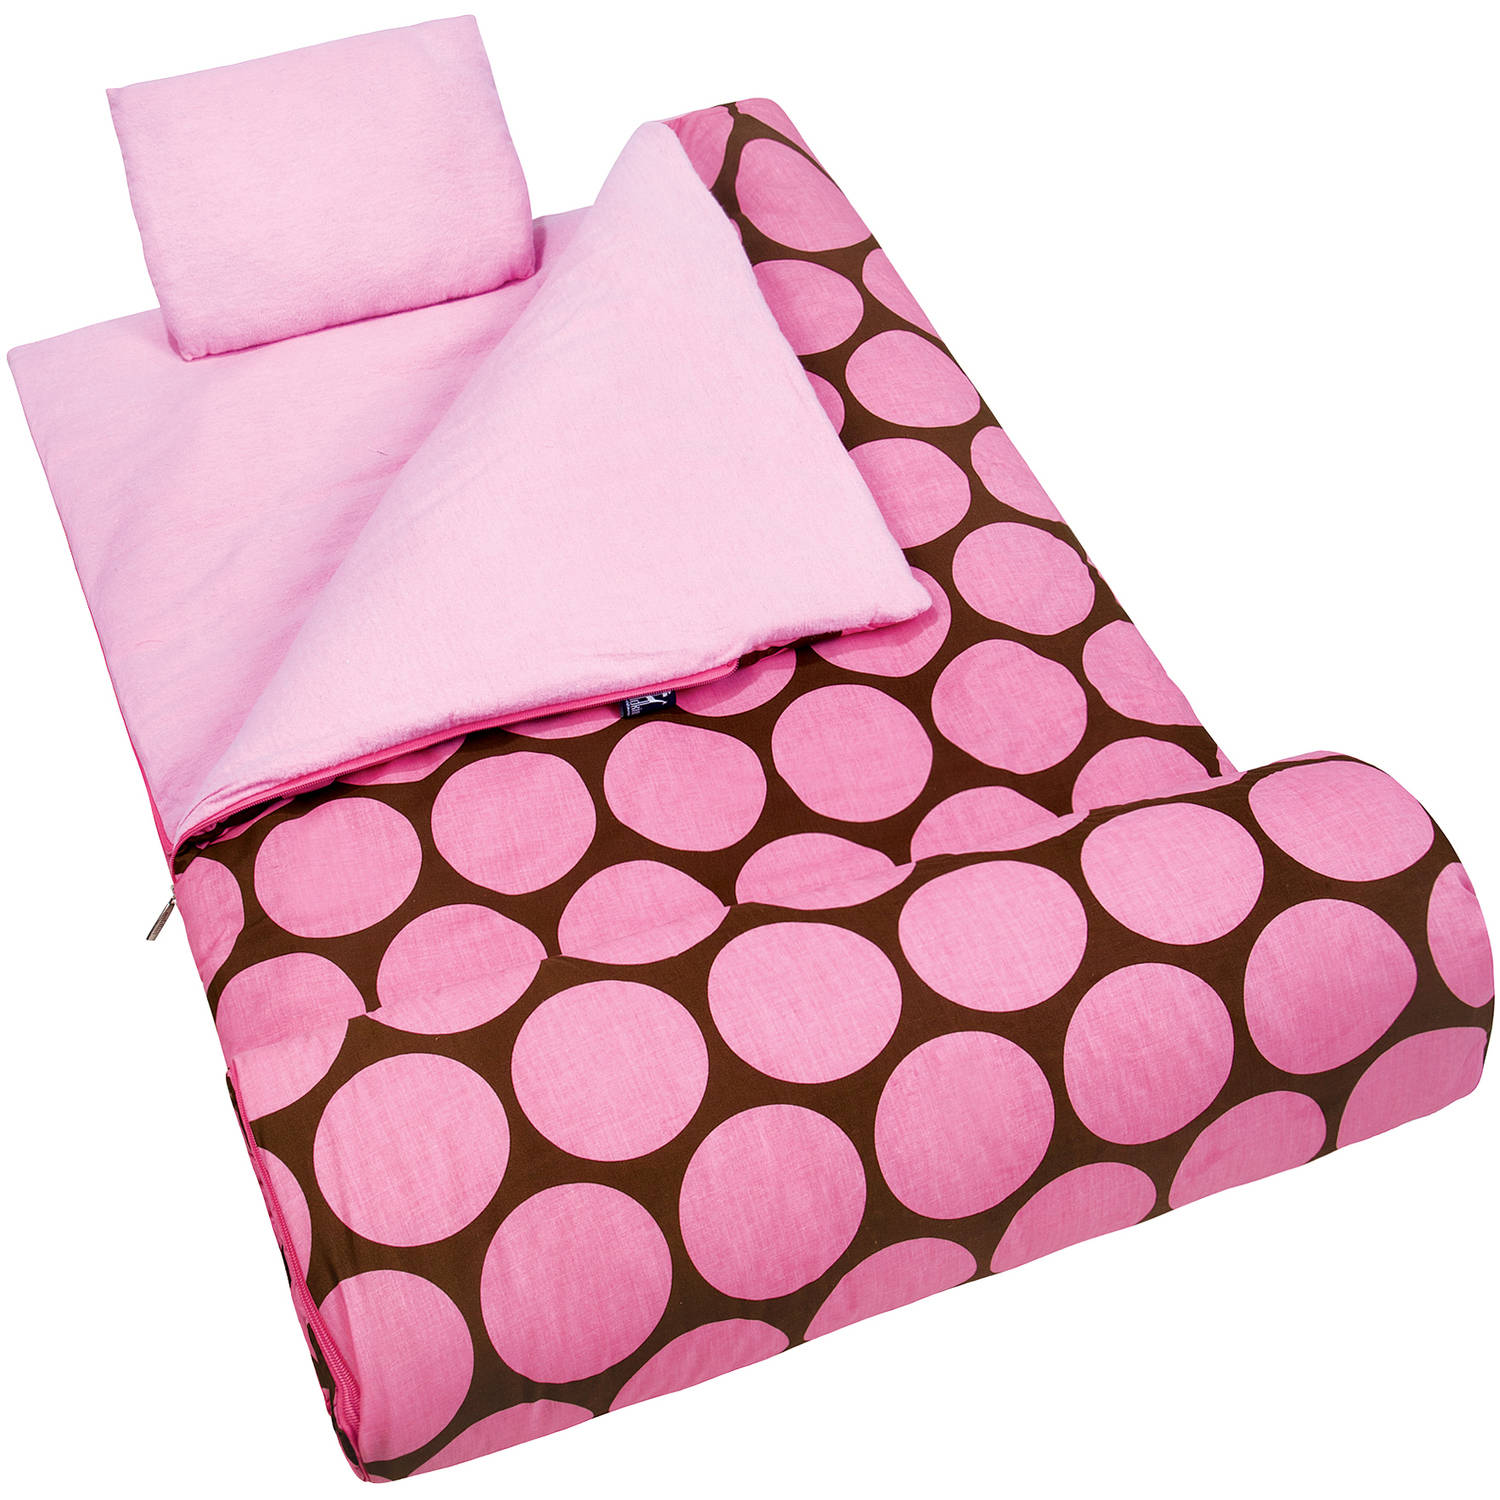 Wildkin Kids' Sleeping Bag, Big Pink Dot